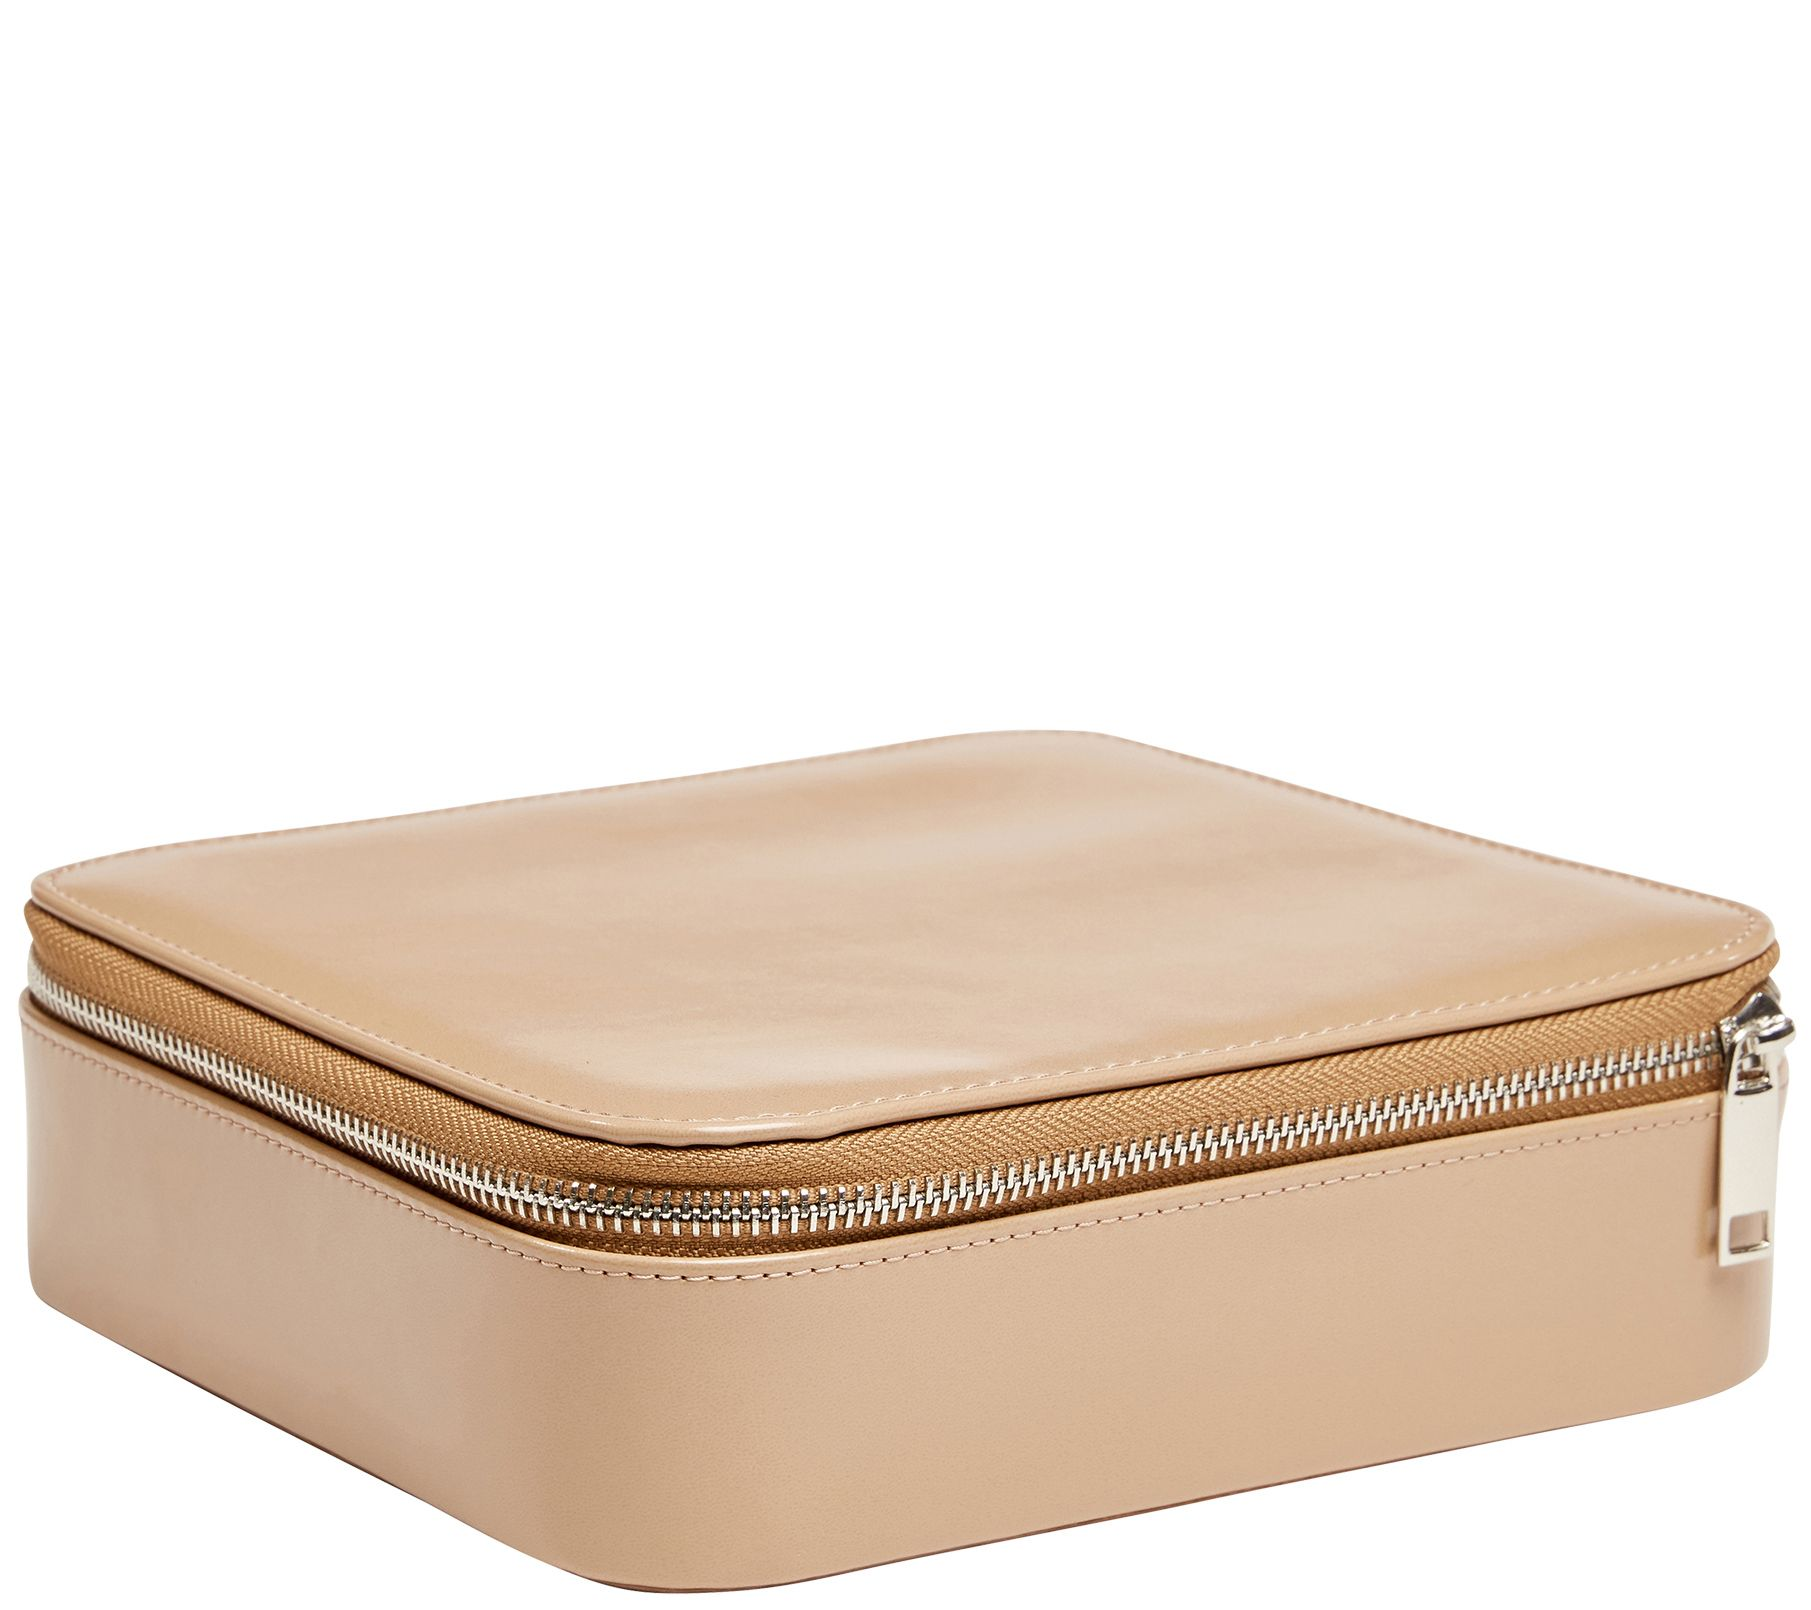 Mele Co Gracie Travel Jewelry Case QVCcom